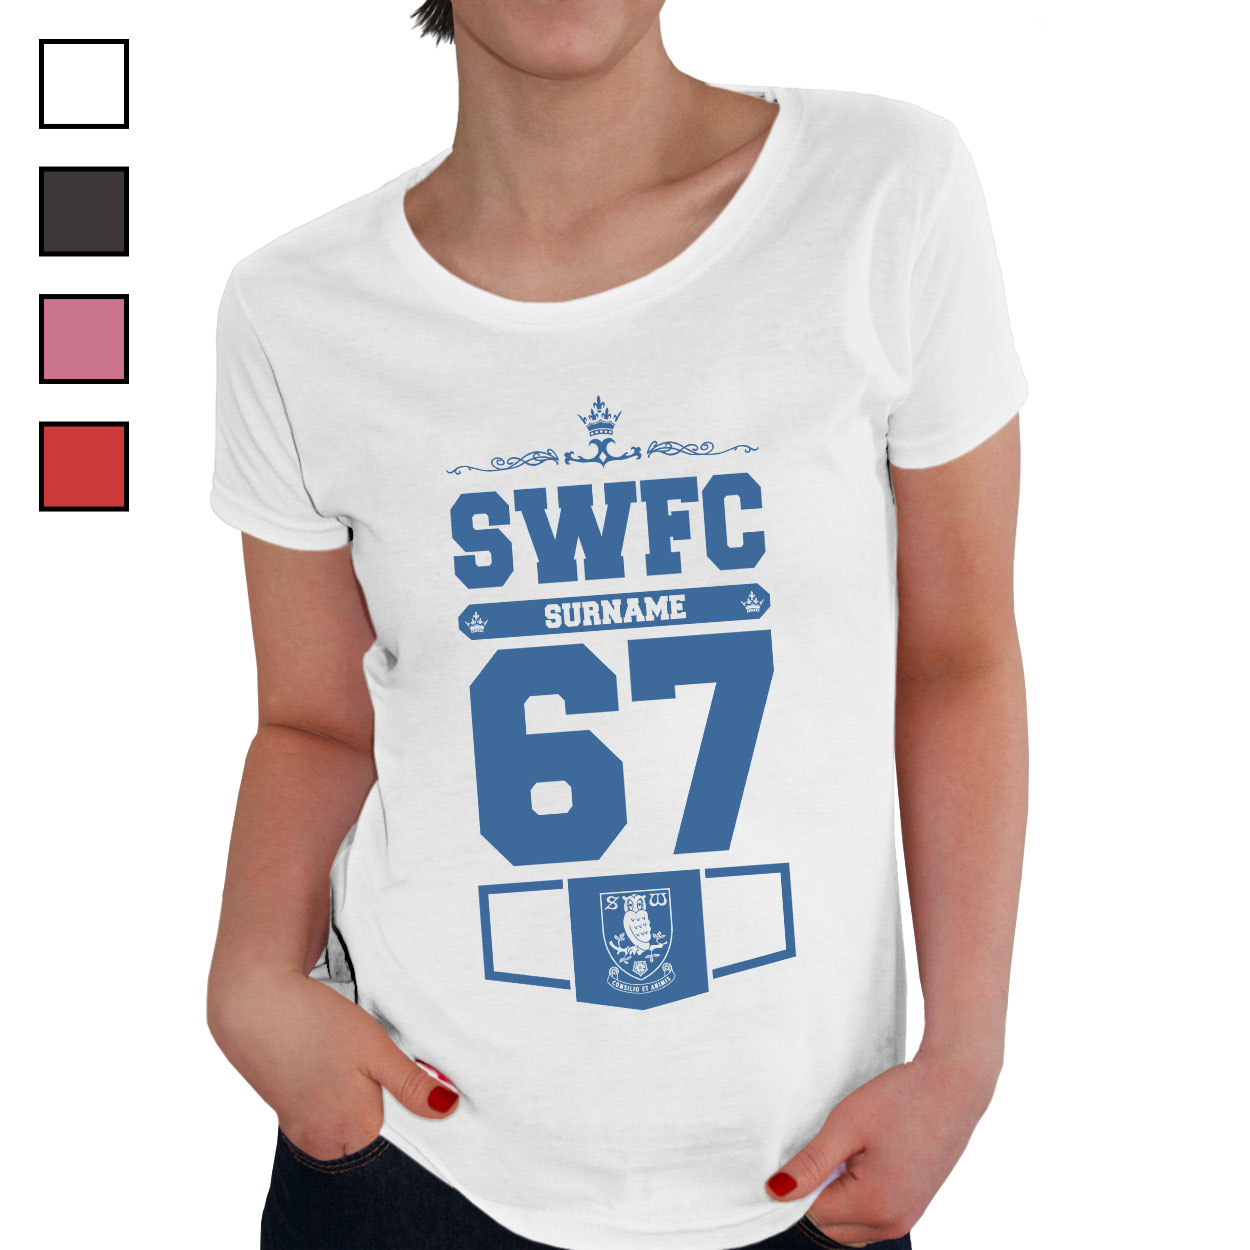 Sheffield Wednesday FC Ladies Club T-Shirt